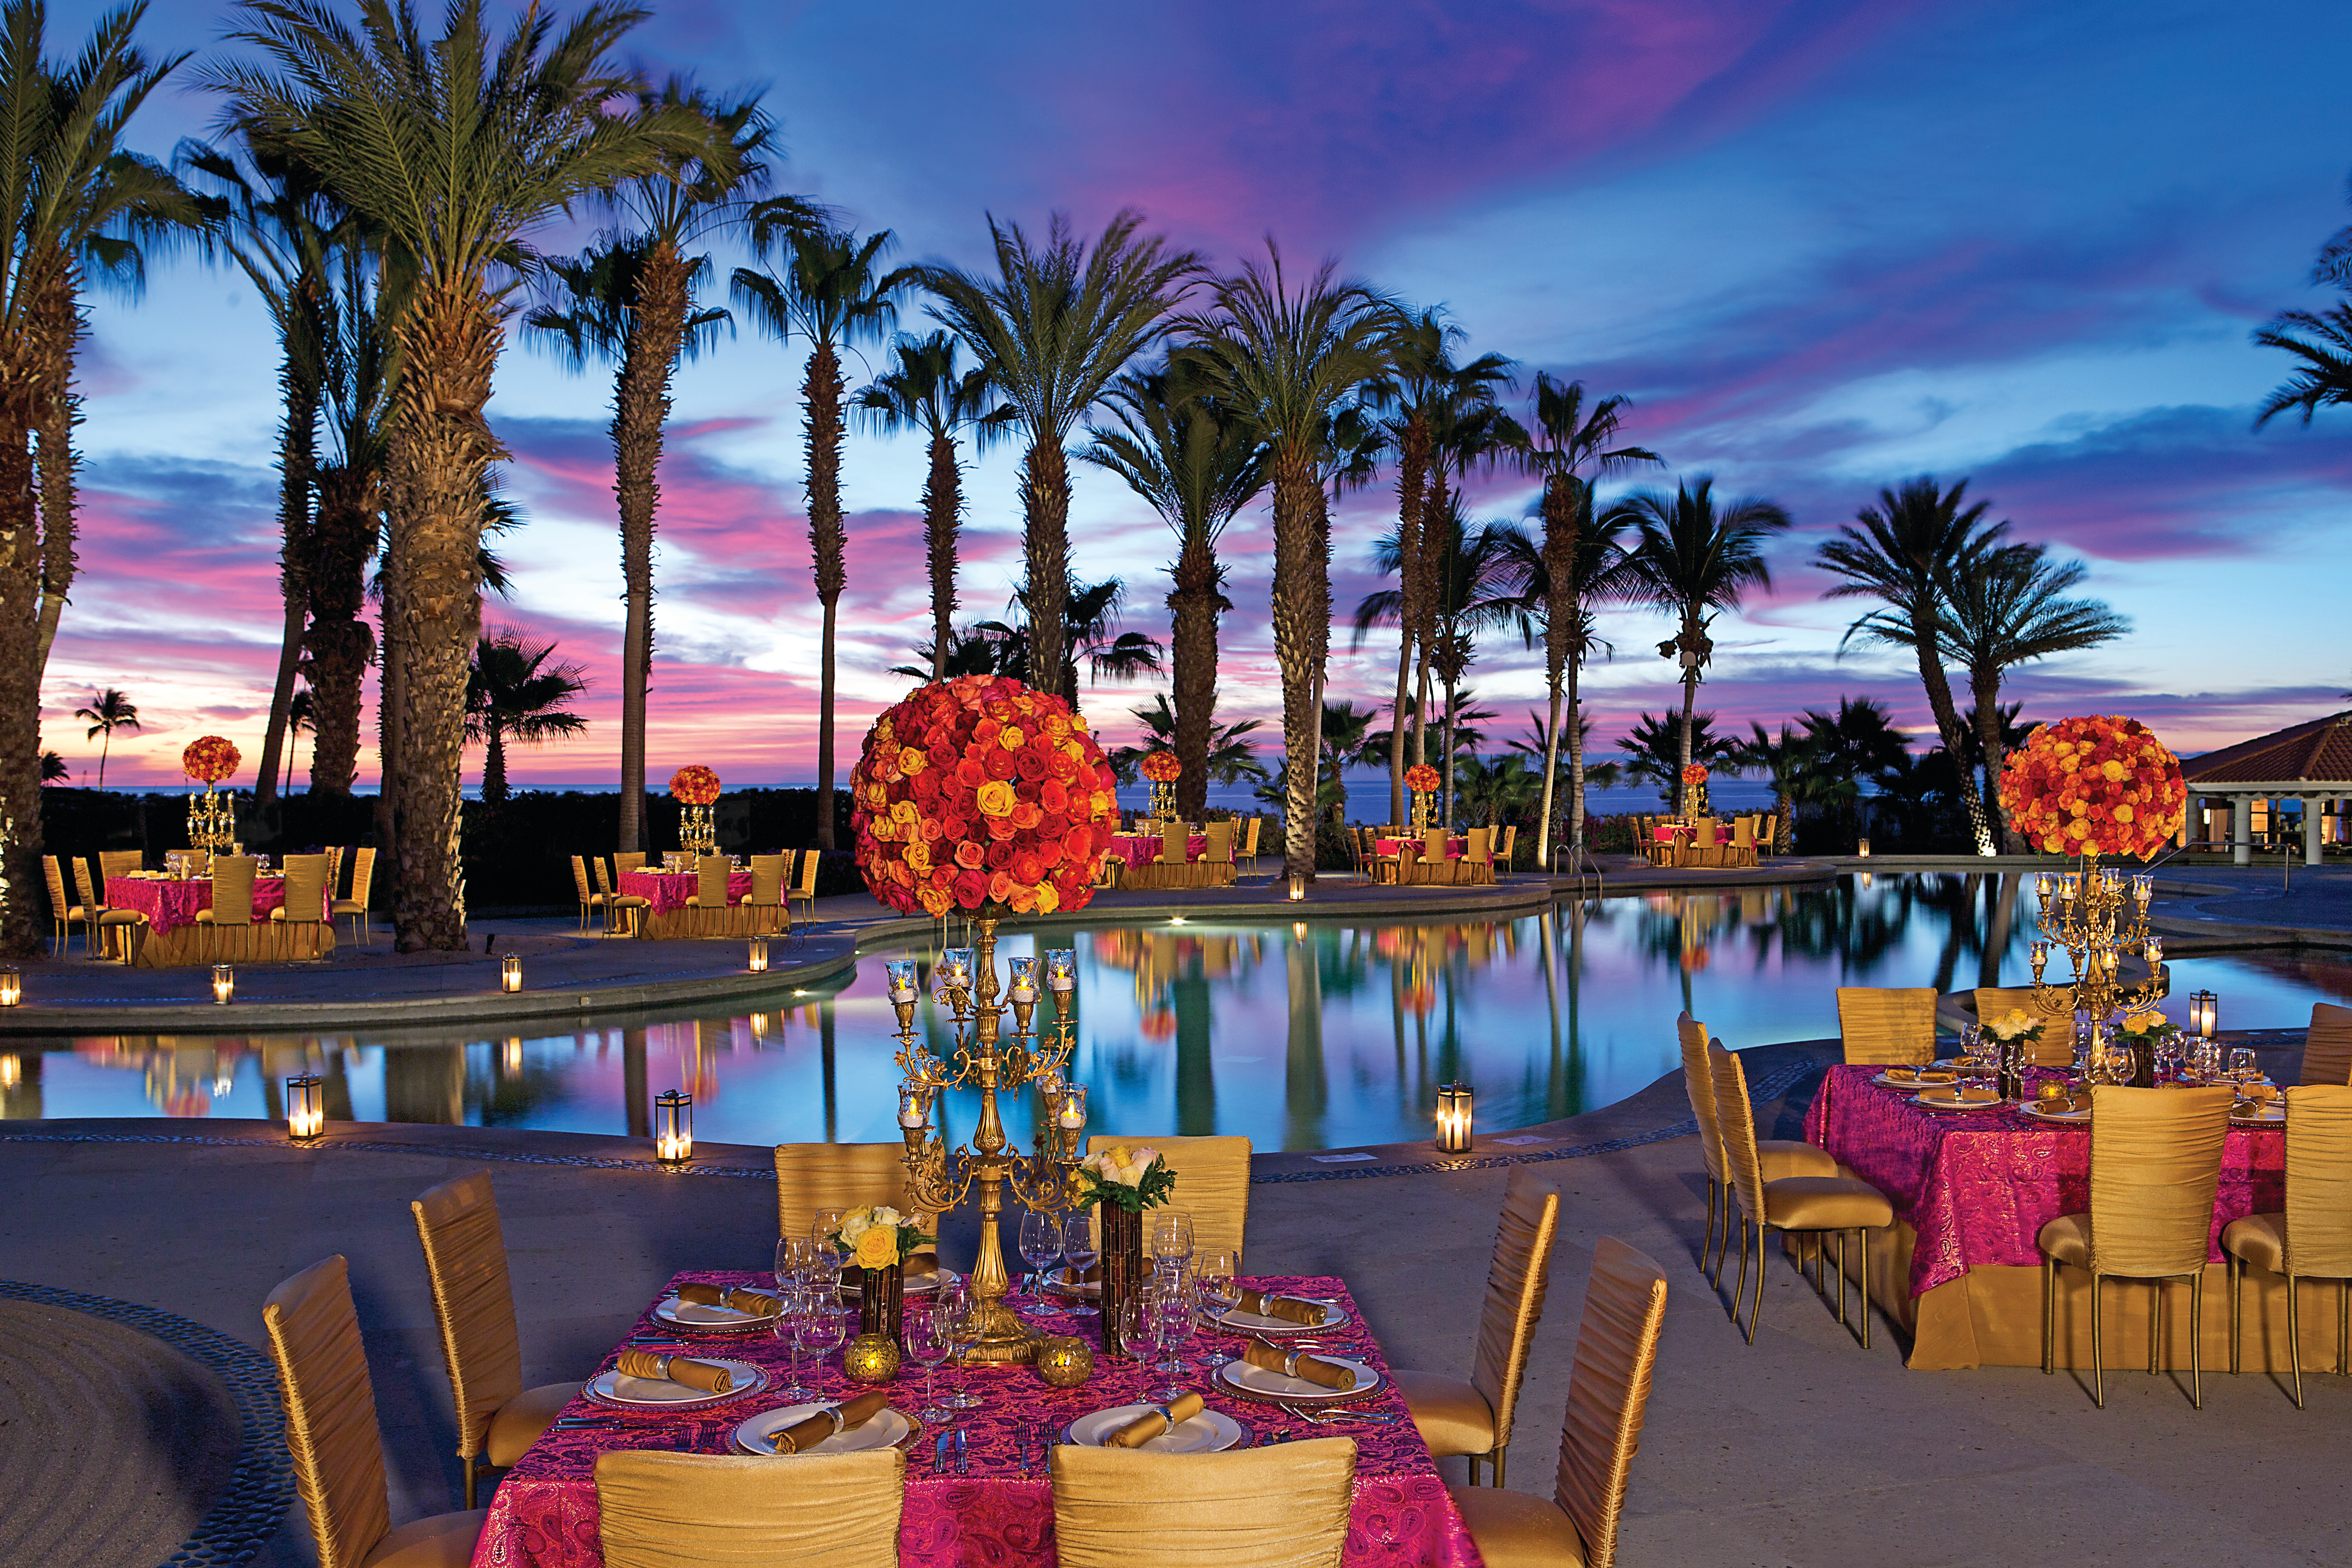 Travel Agency All-Inclusive Resort Dreams Los Cabos 55